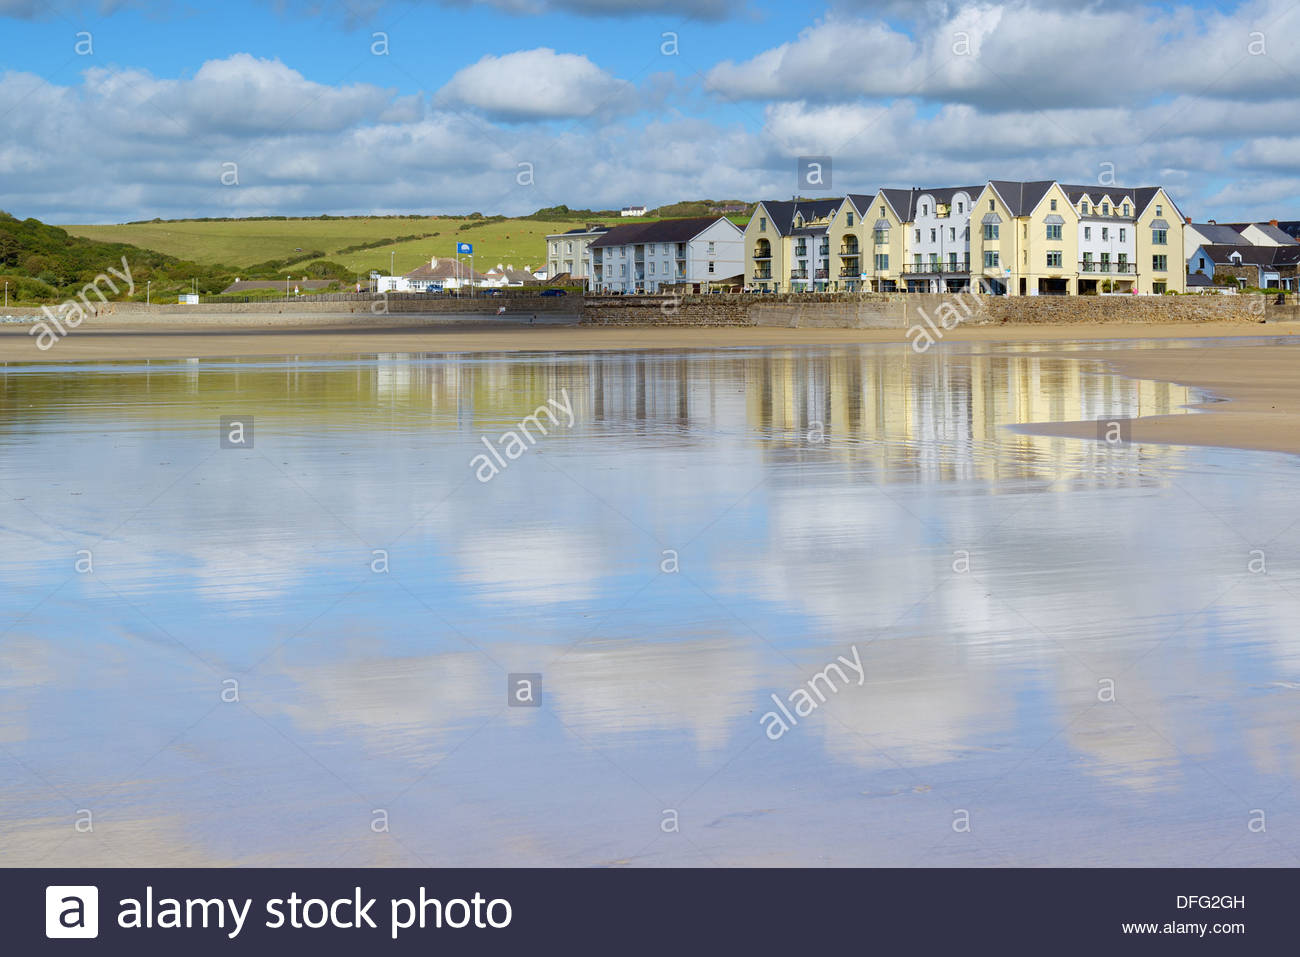 Clouds reflected in the wet sand, Broad Haven beach, Pembrokeshire, Wales UK Britain - Stock Image